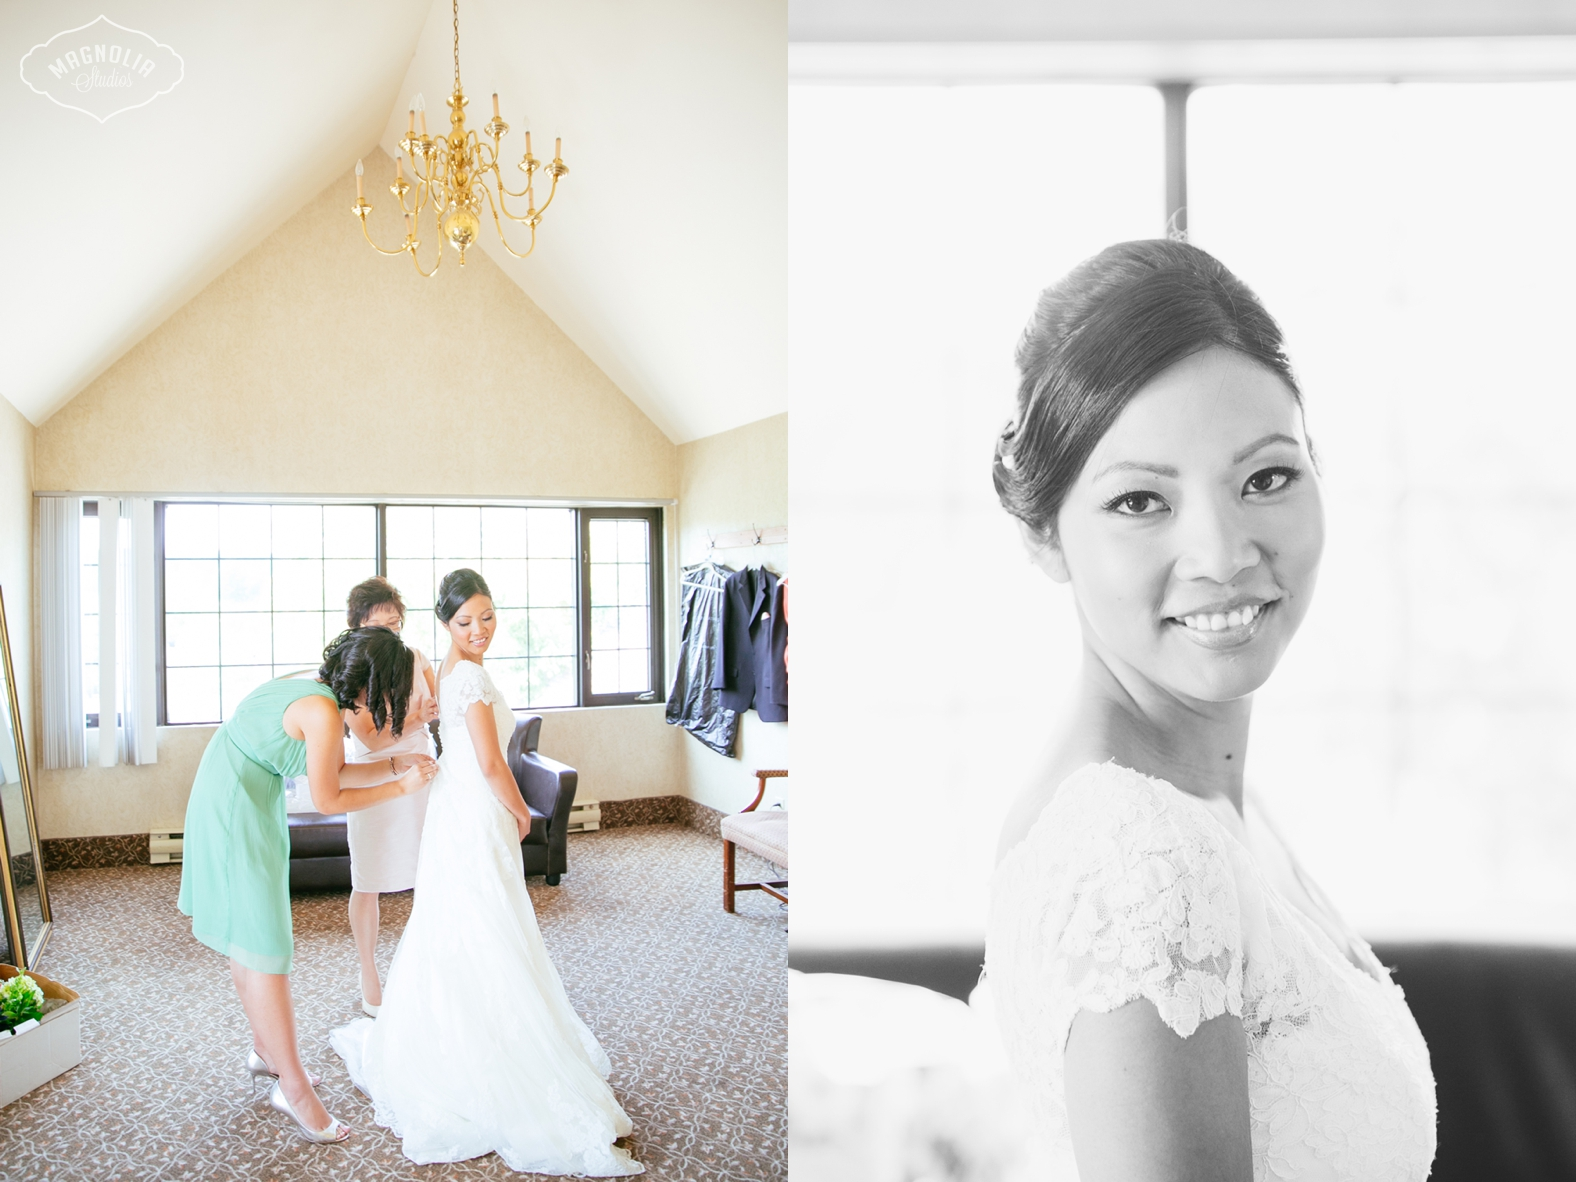 Magnolia_Studios_Wedding_0177